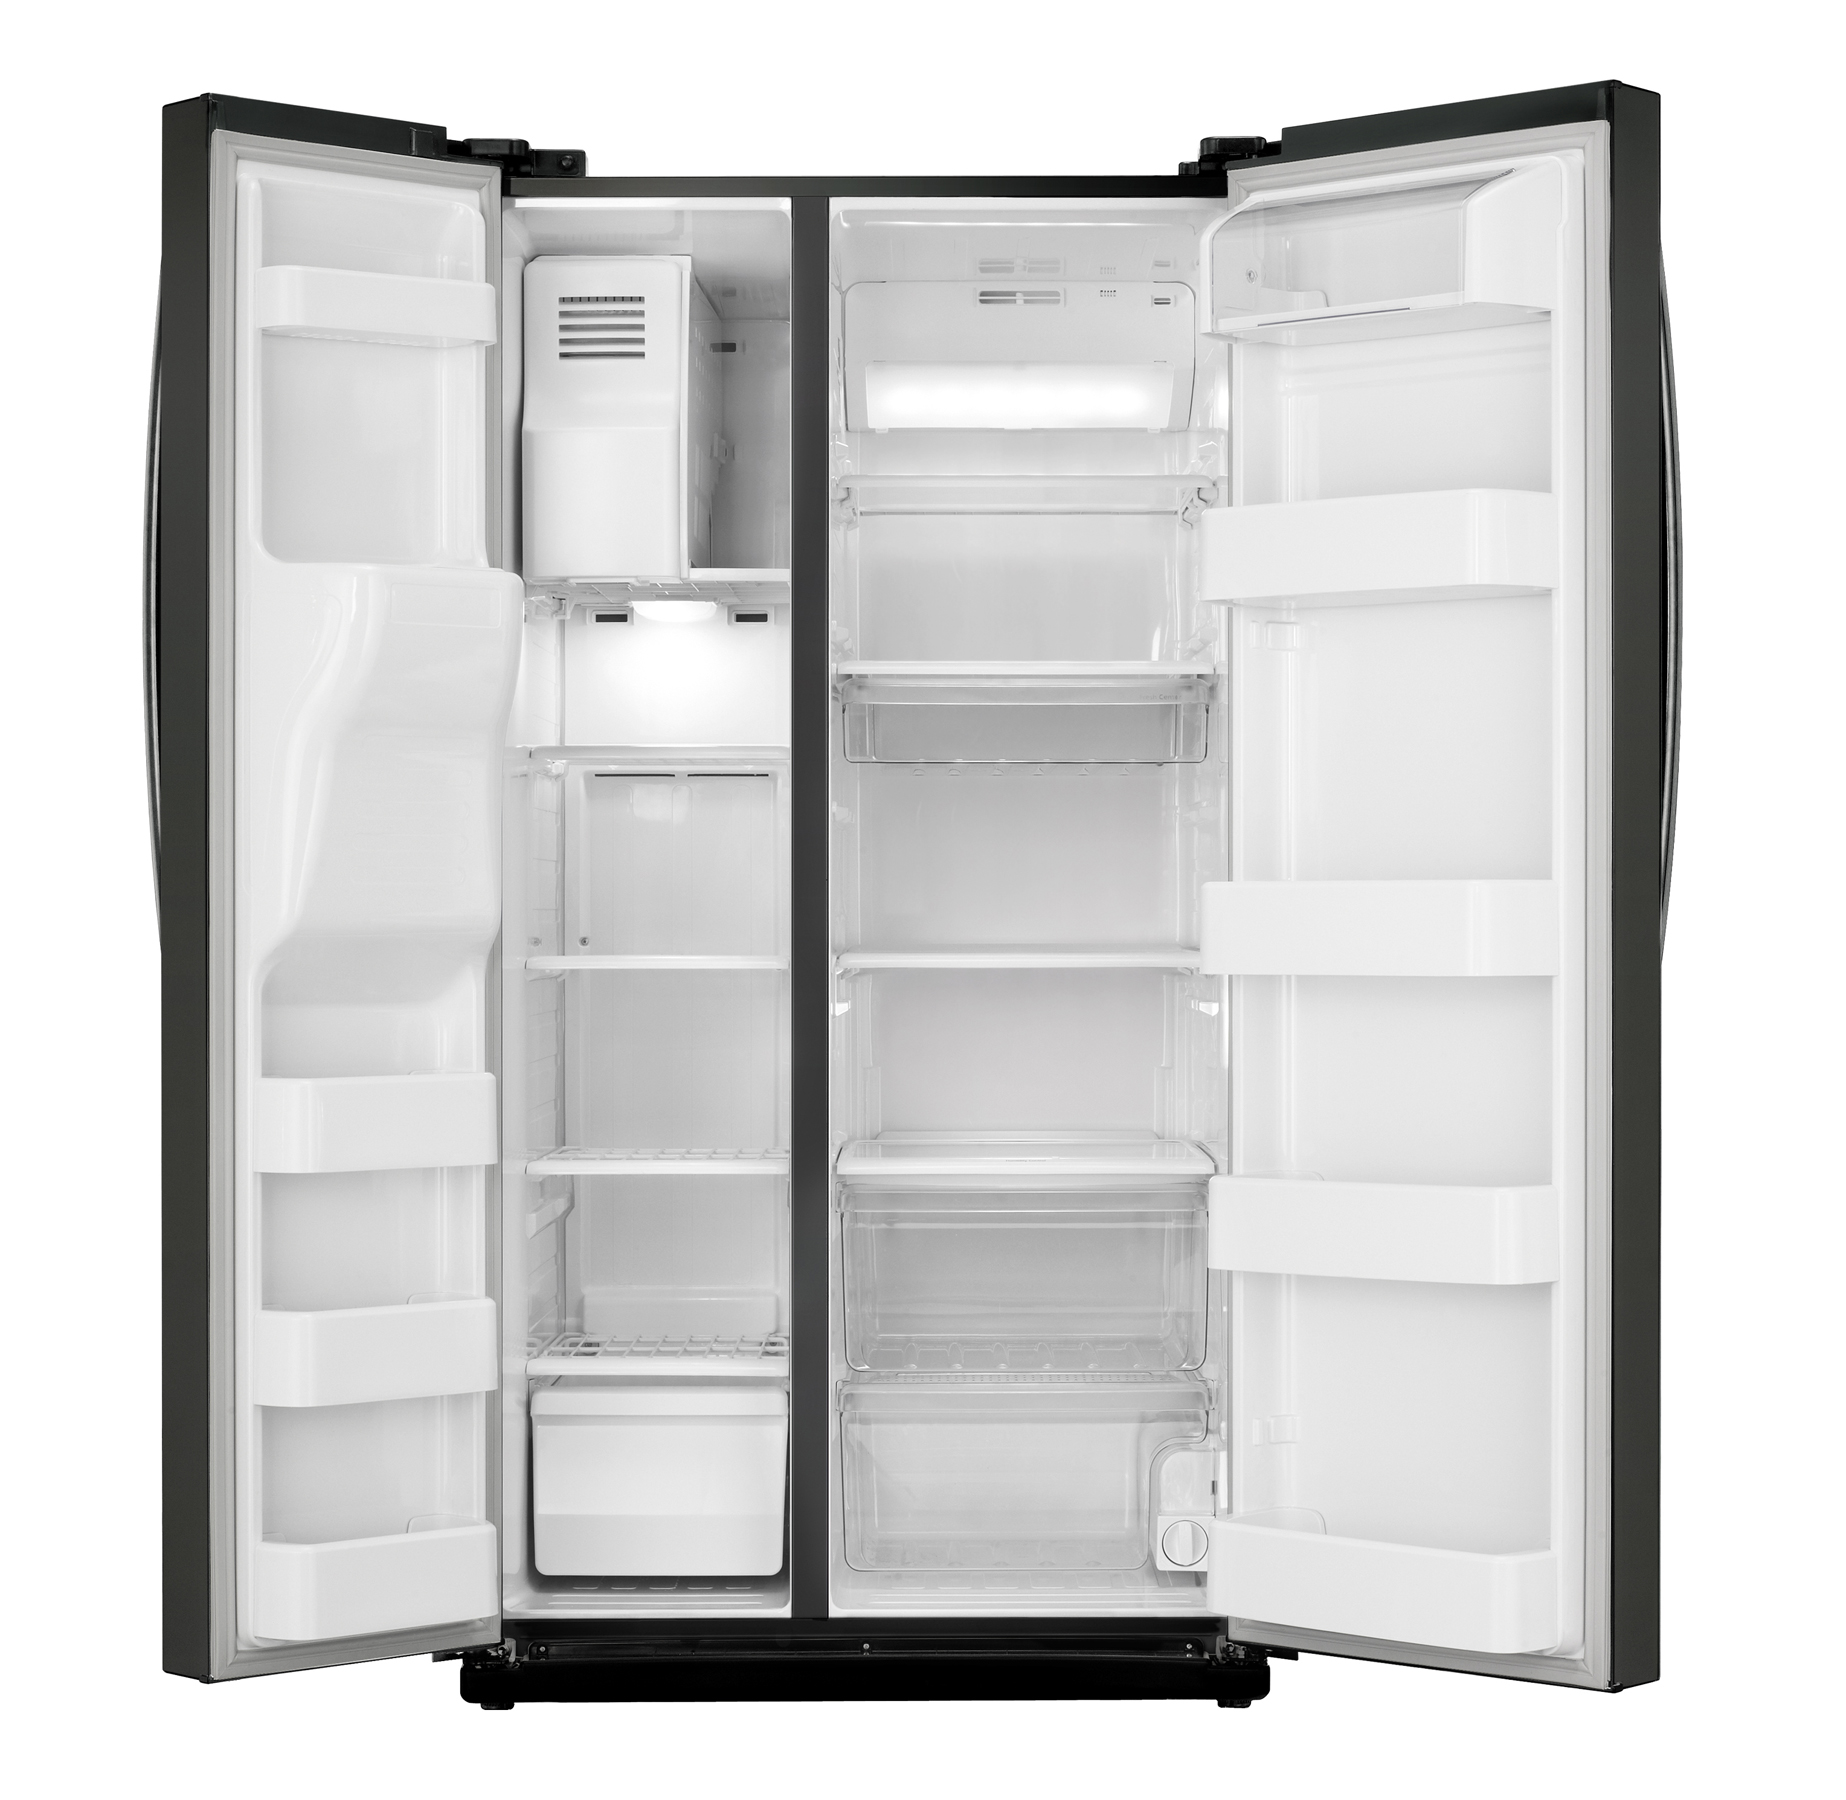 Samsung 24.5 cu. ft. Side-by-Side Refrigerator - Black